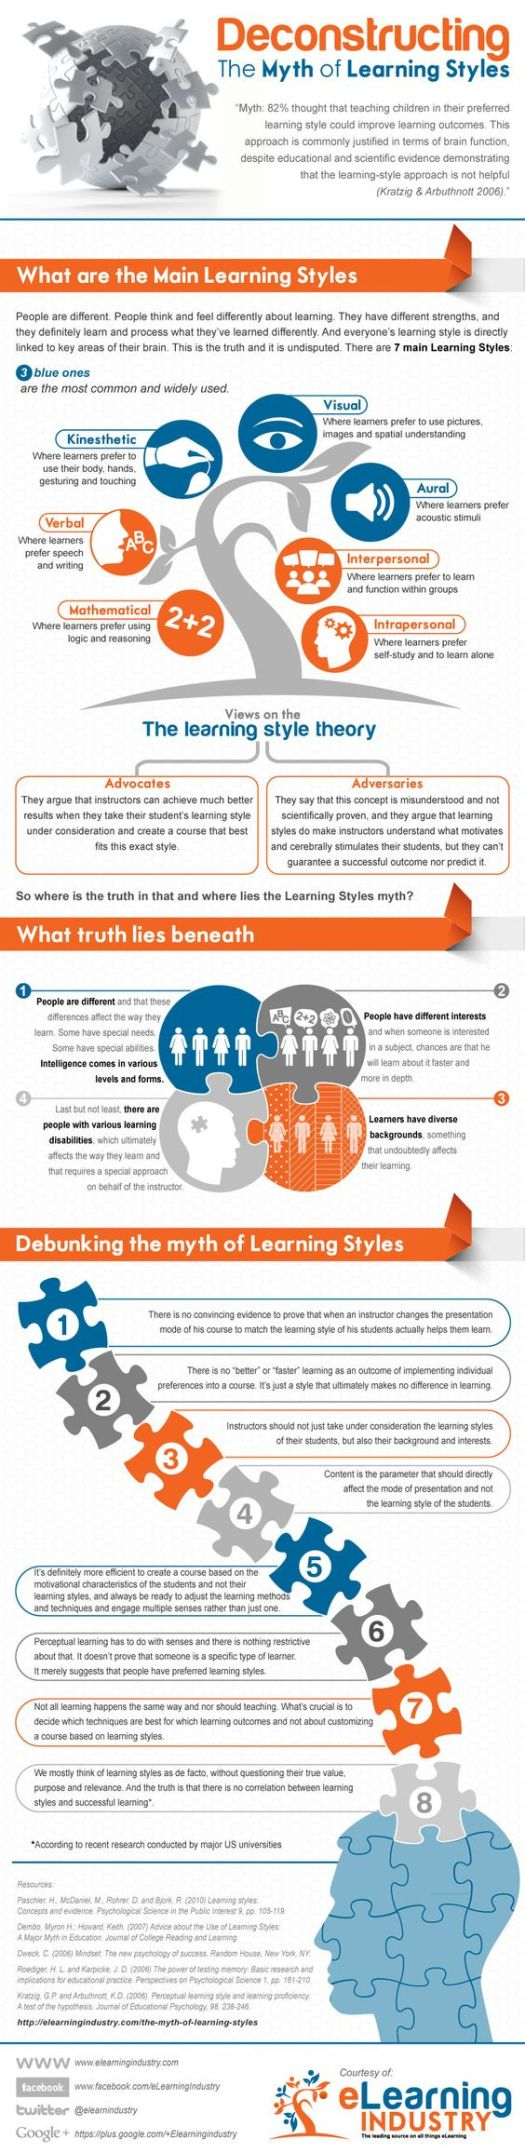 infographic deconstructing the myth of learning styles